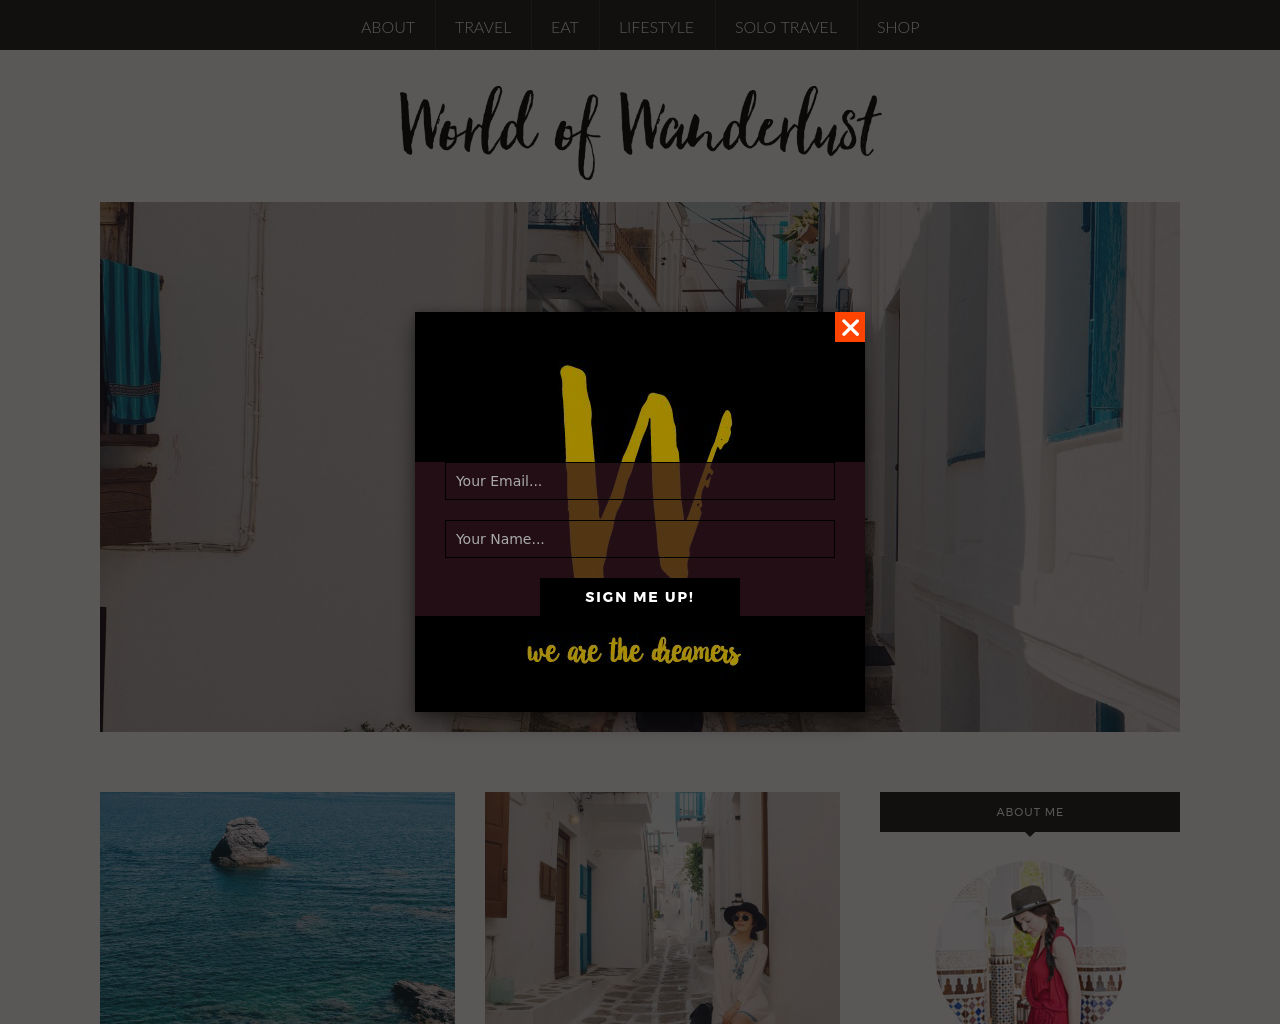 WORLD-OF-WANDERLUST-Advertising-Reviews-Pricing